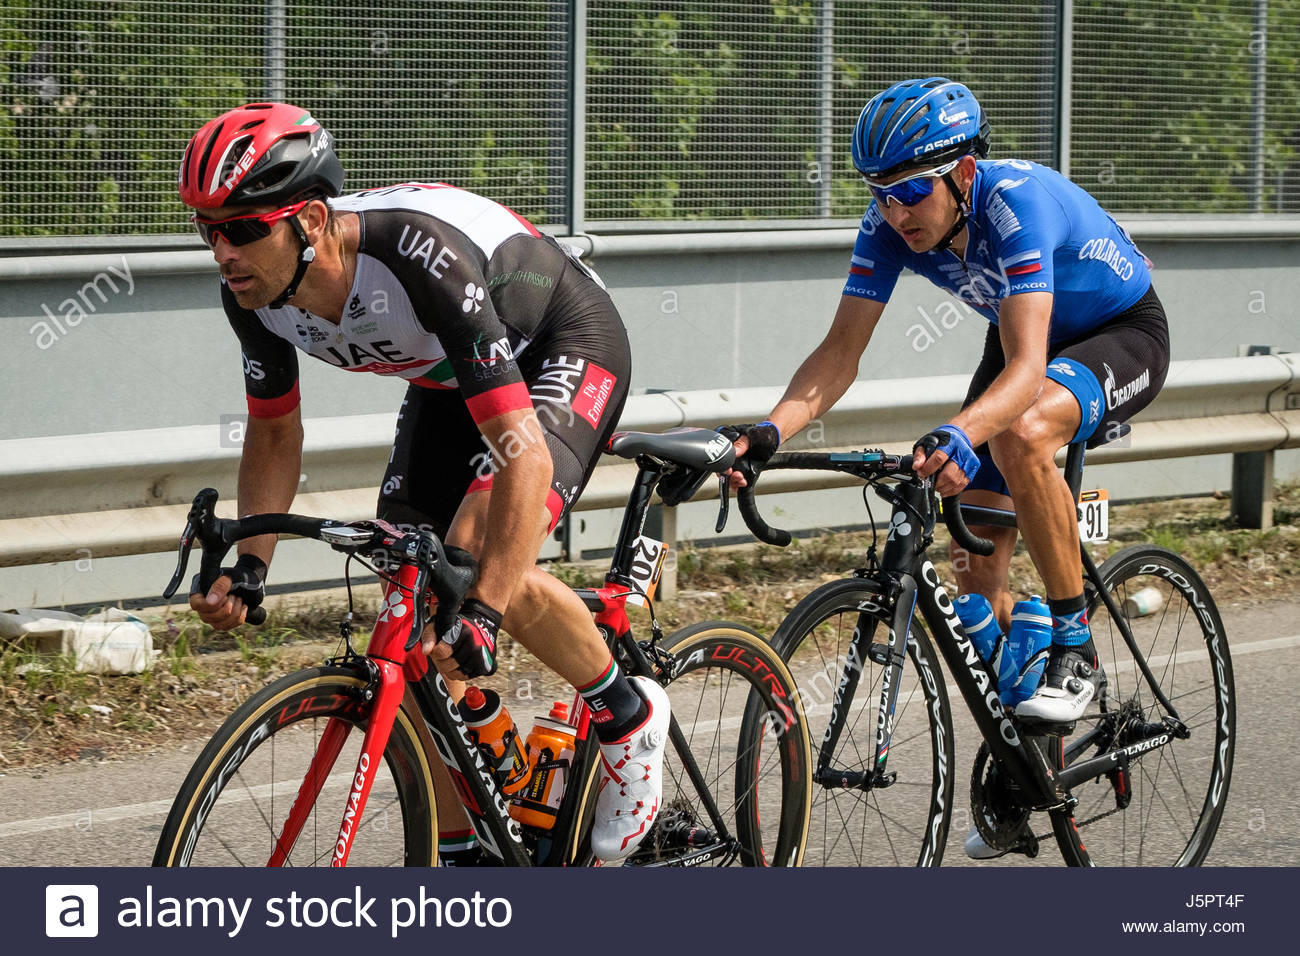 Bologna, Italy. 18 May, 2017. Cyclists competing in the 2017 Giro d'Italia pass through the town of Zola Predosa - Stock Image